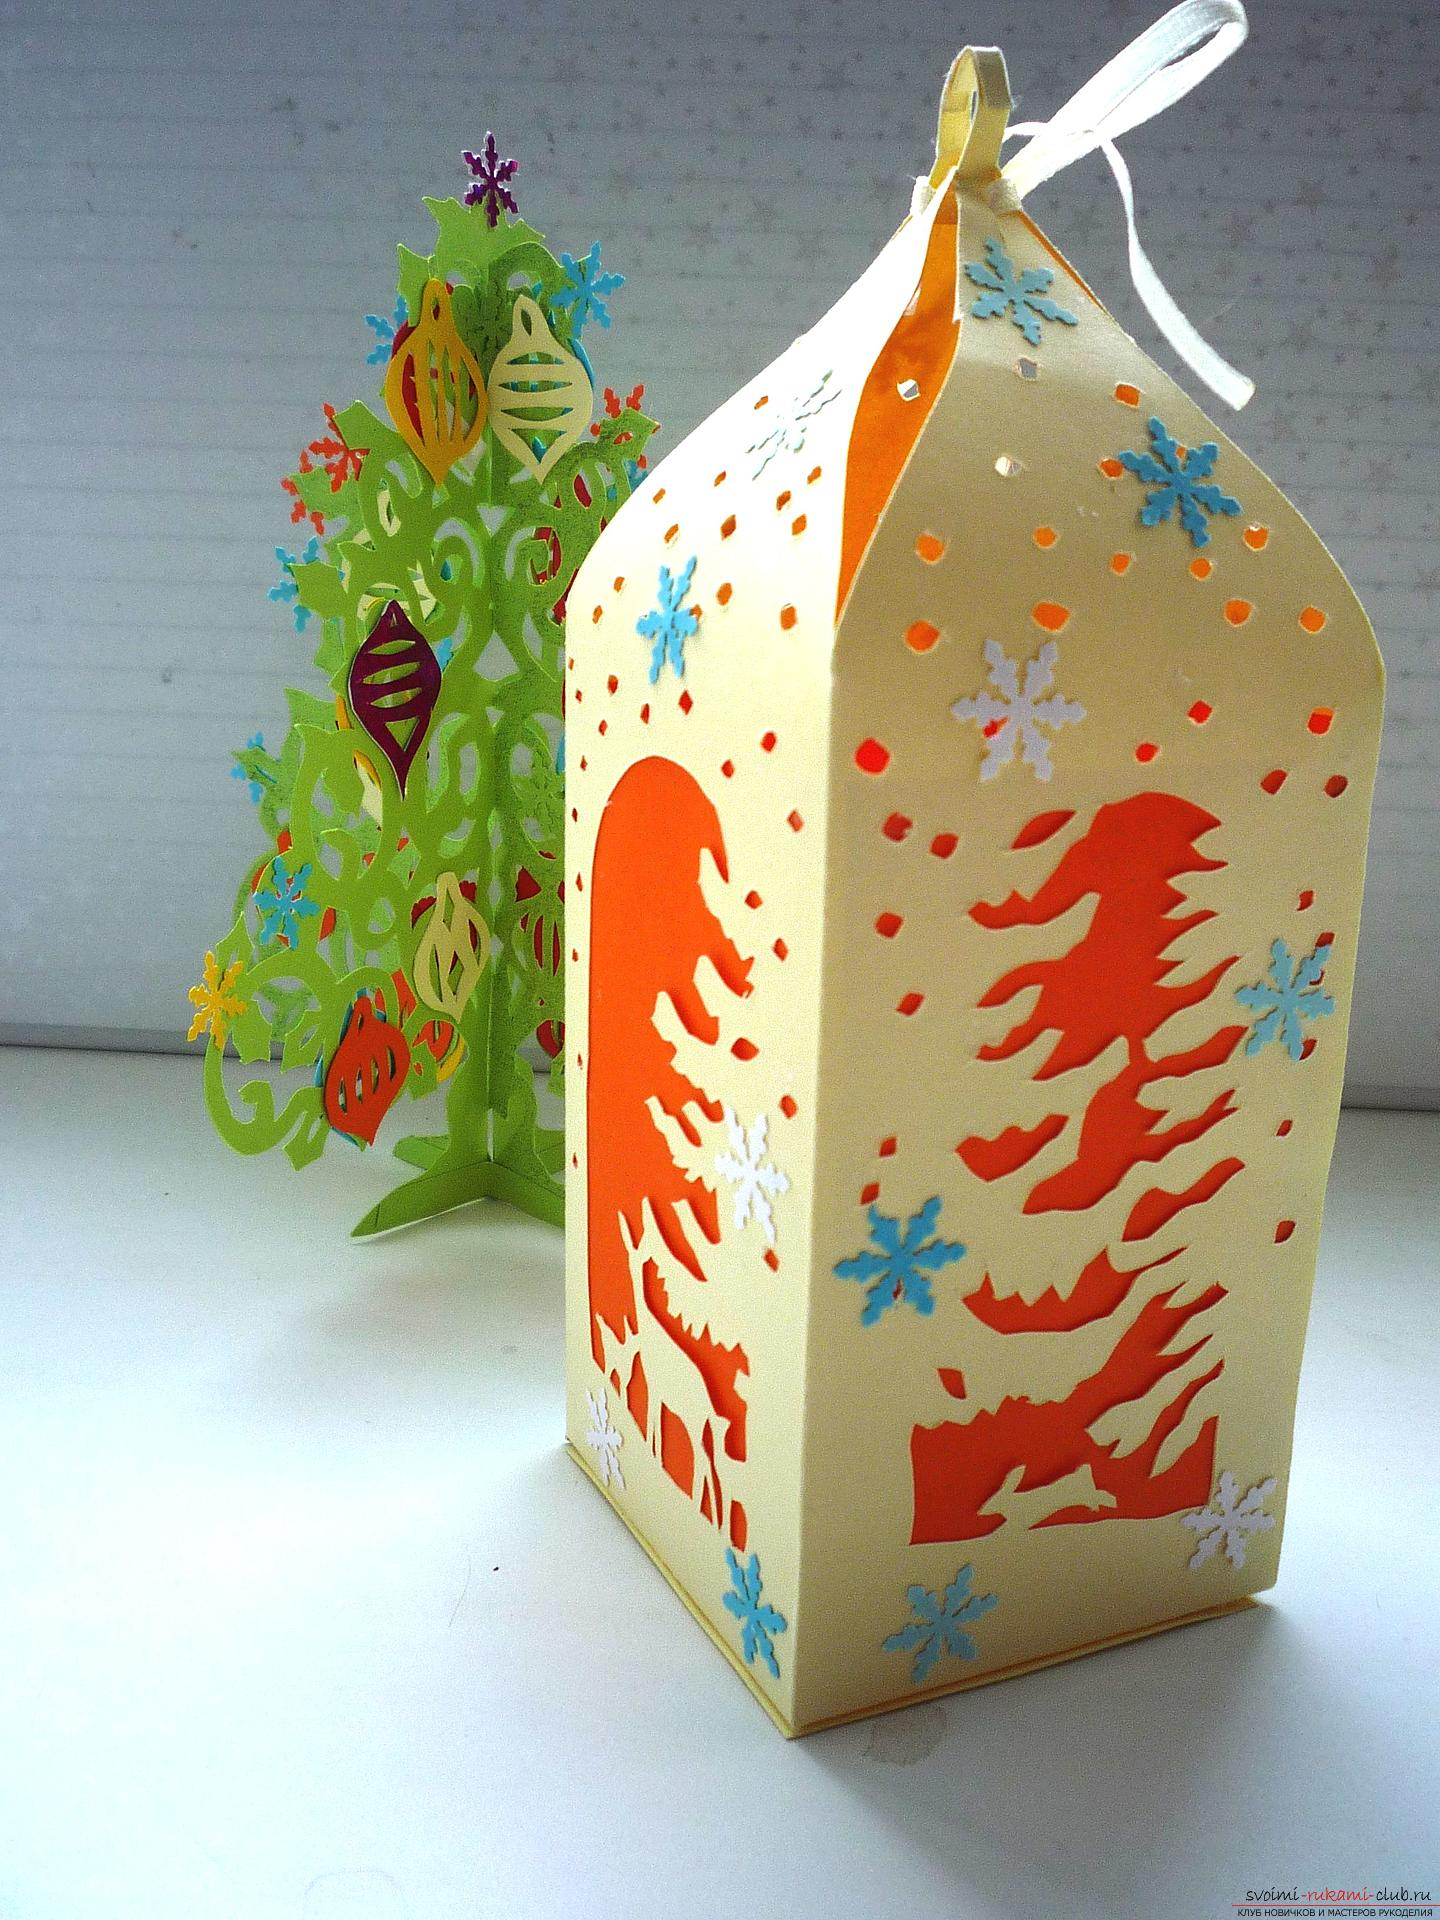 The master class will teach you how to make a New Year's craft - a box for a sweet gift